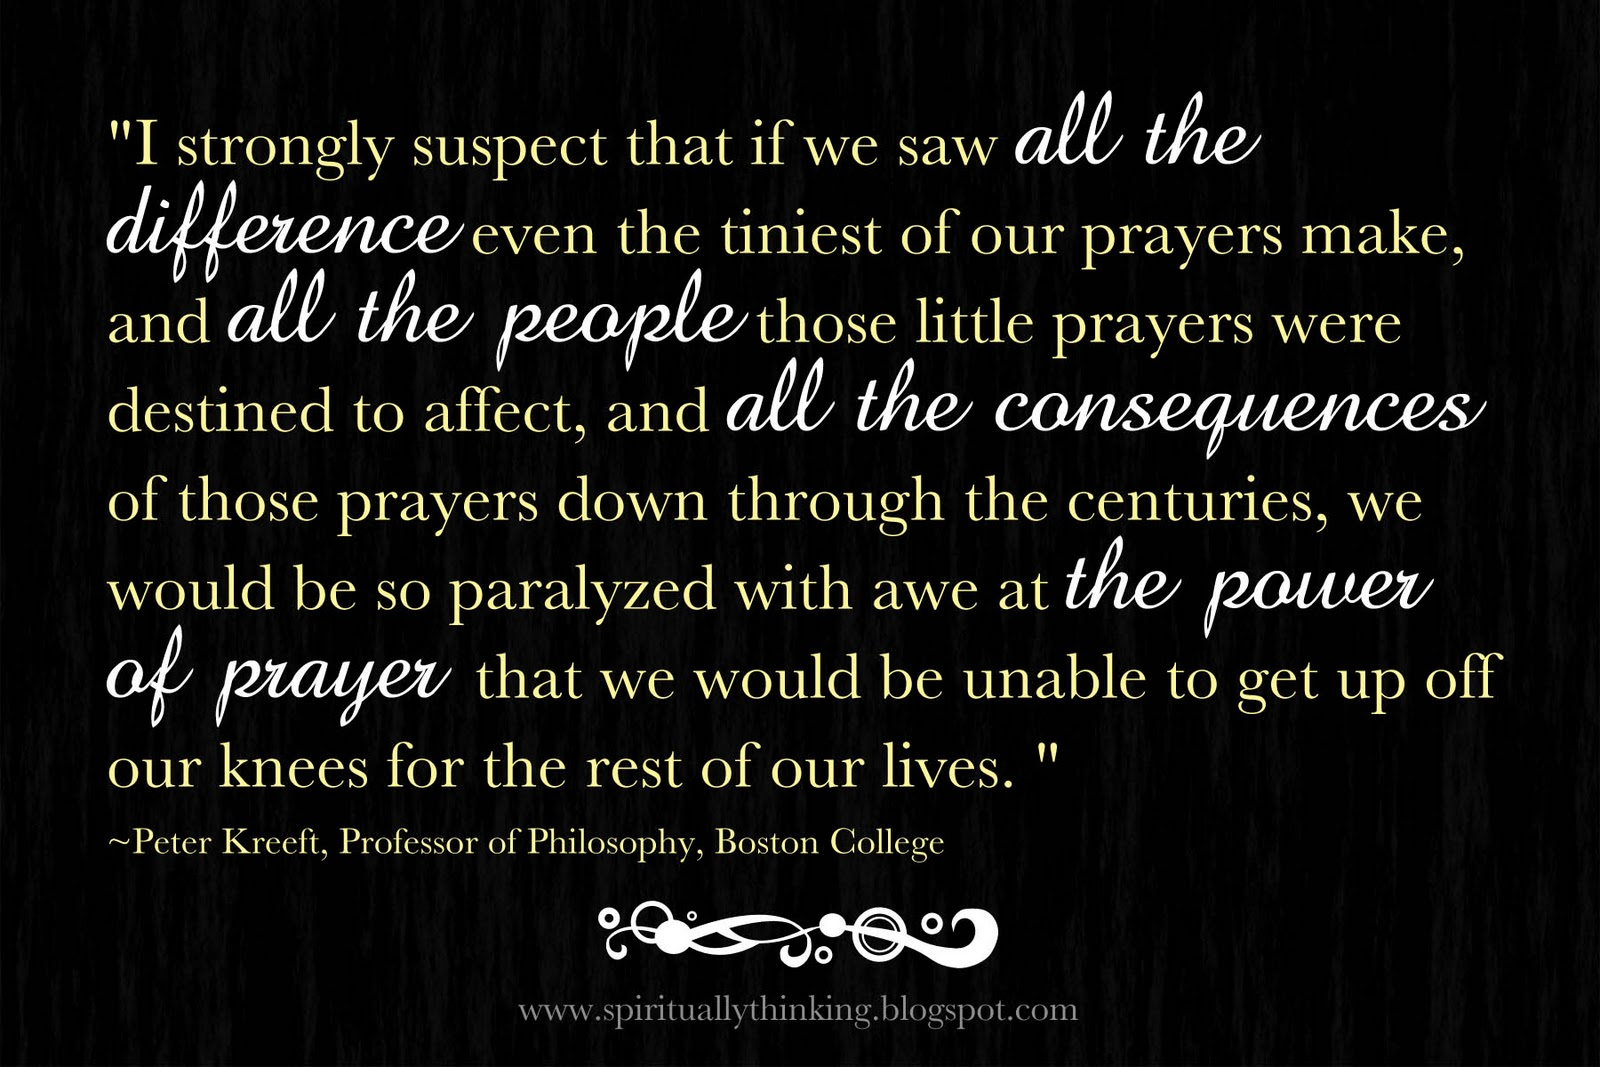 Power Of Prayer Quotes And Spiritually Speaking The Power Of Prayer